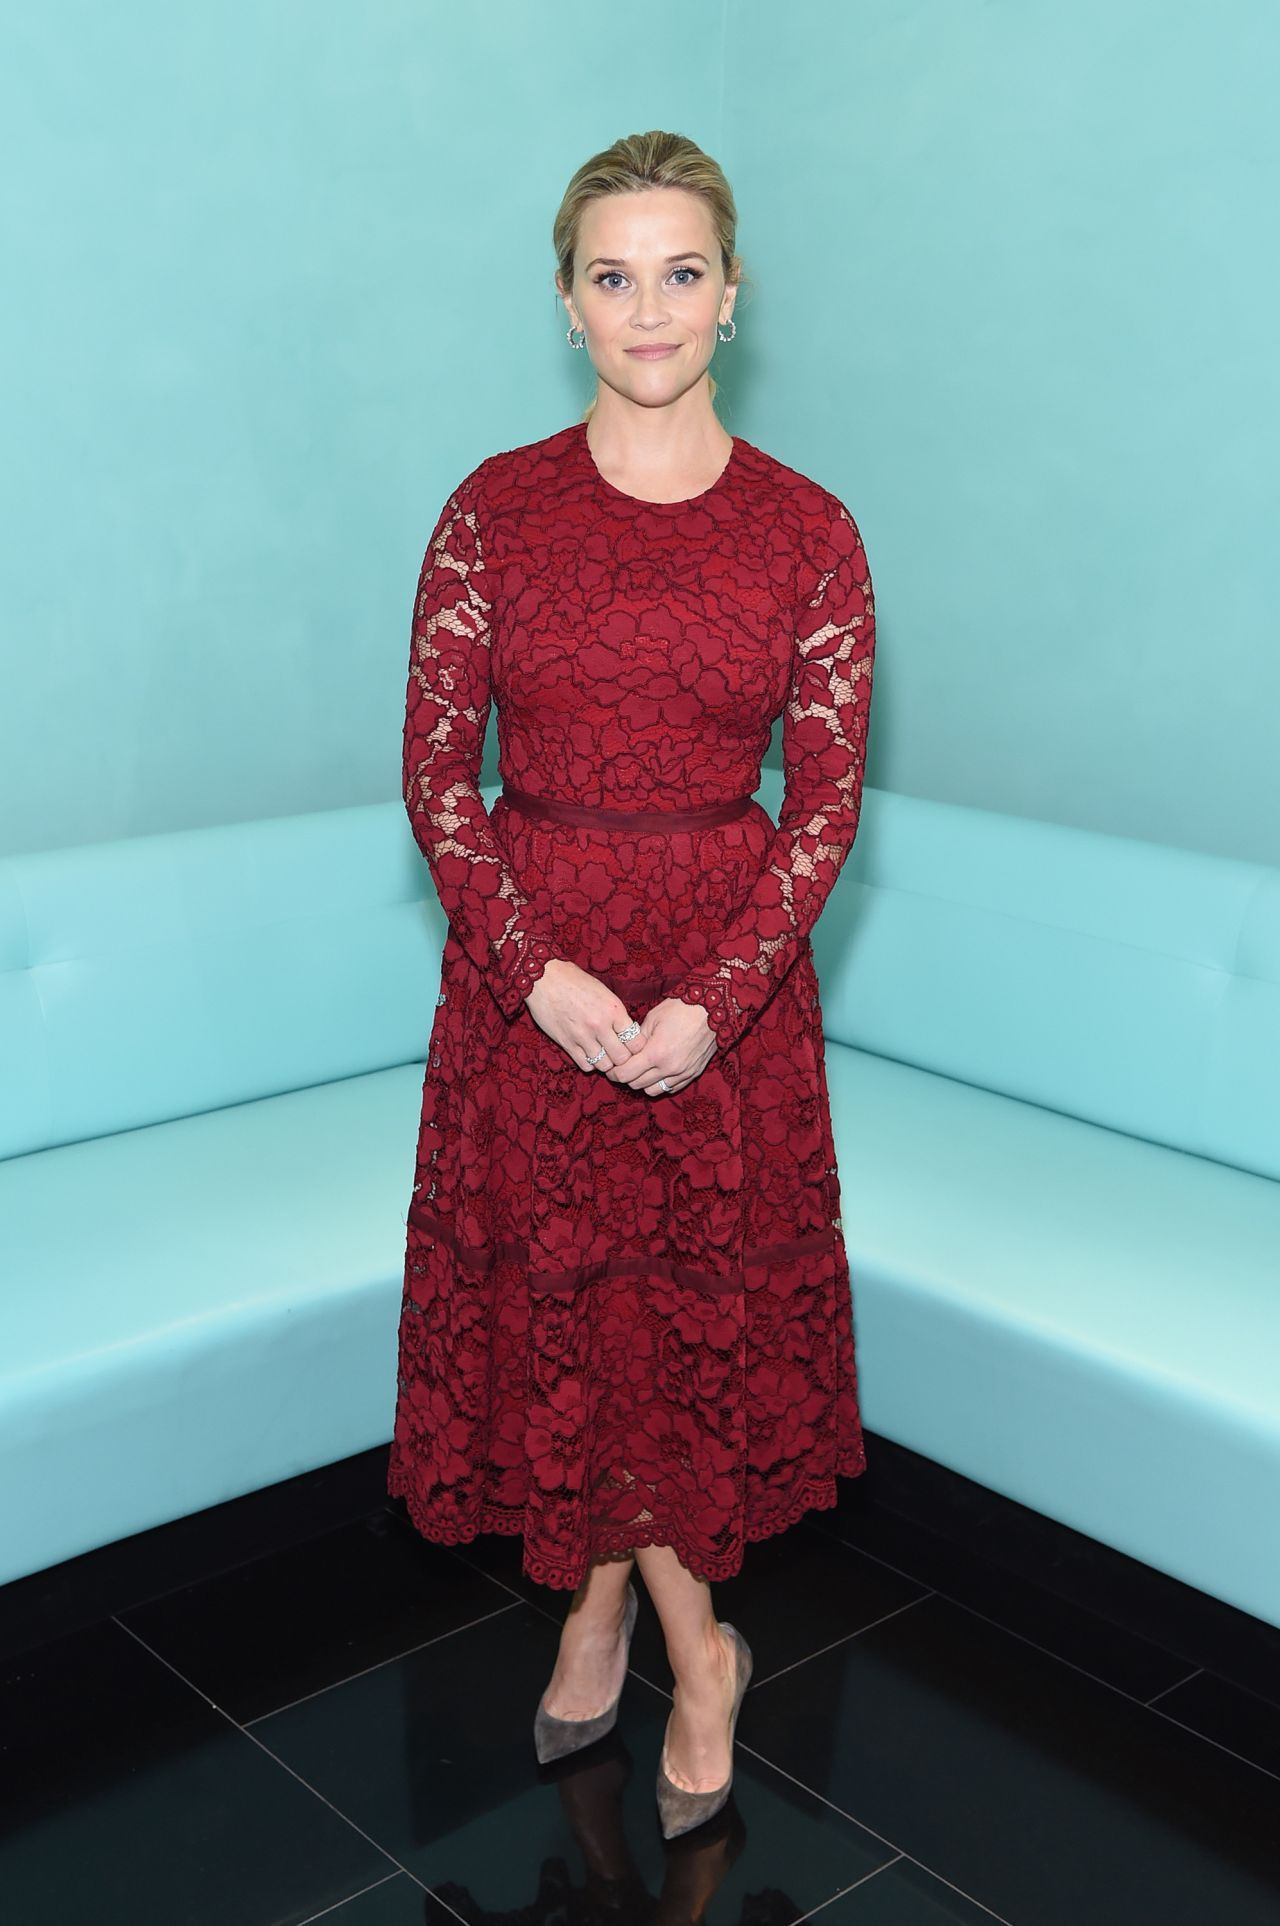 http://celebmafia.com/wp-content/uploads/2017/11/reese-witherspoon-attends-tiffany-co.-holiday-breakfast-in-nyc-4.jpg